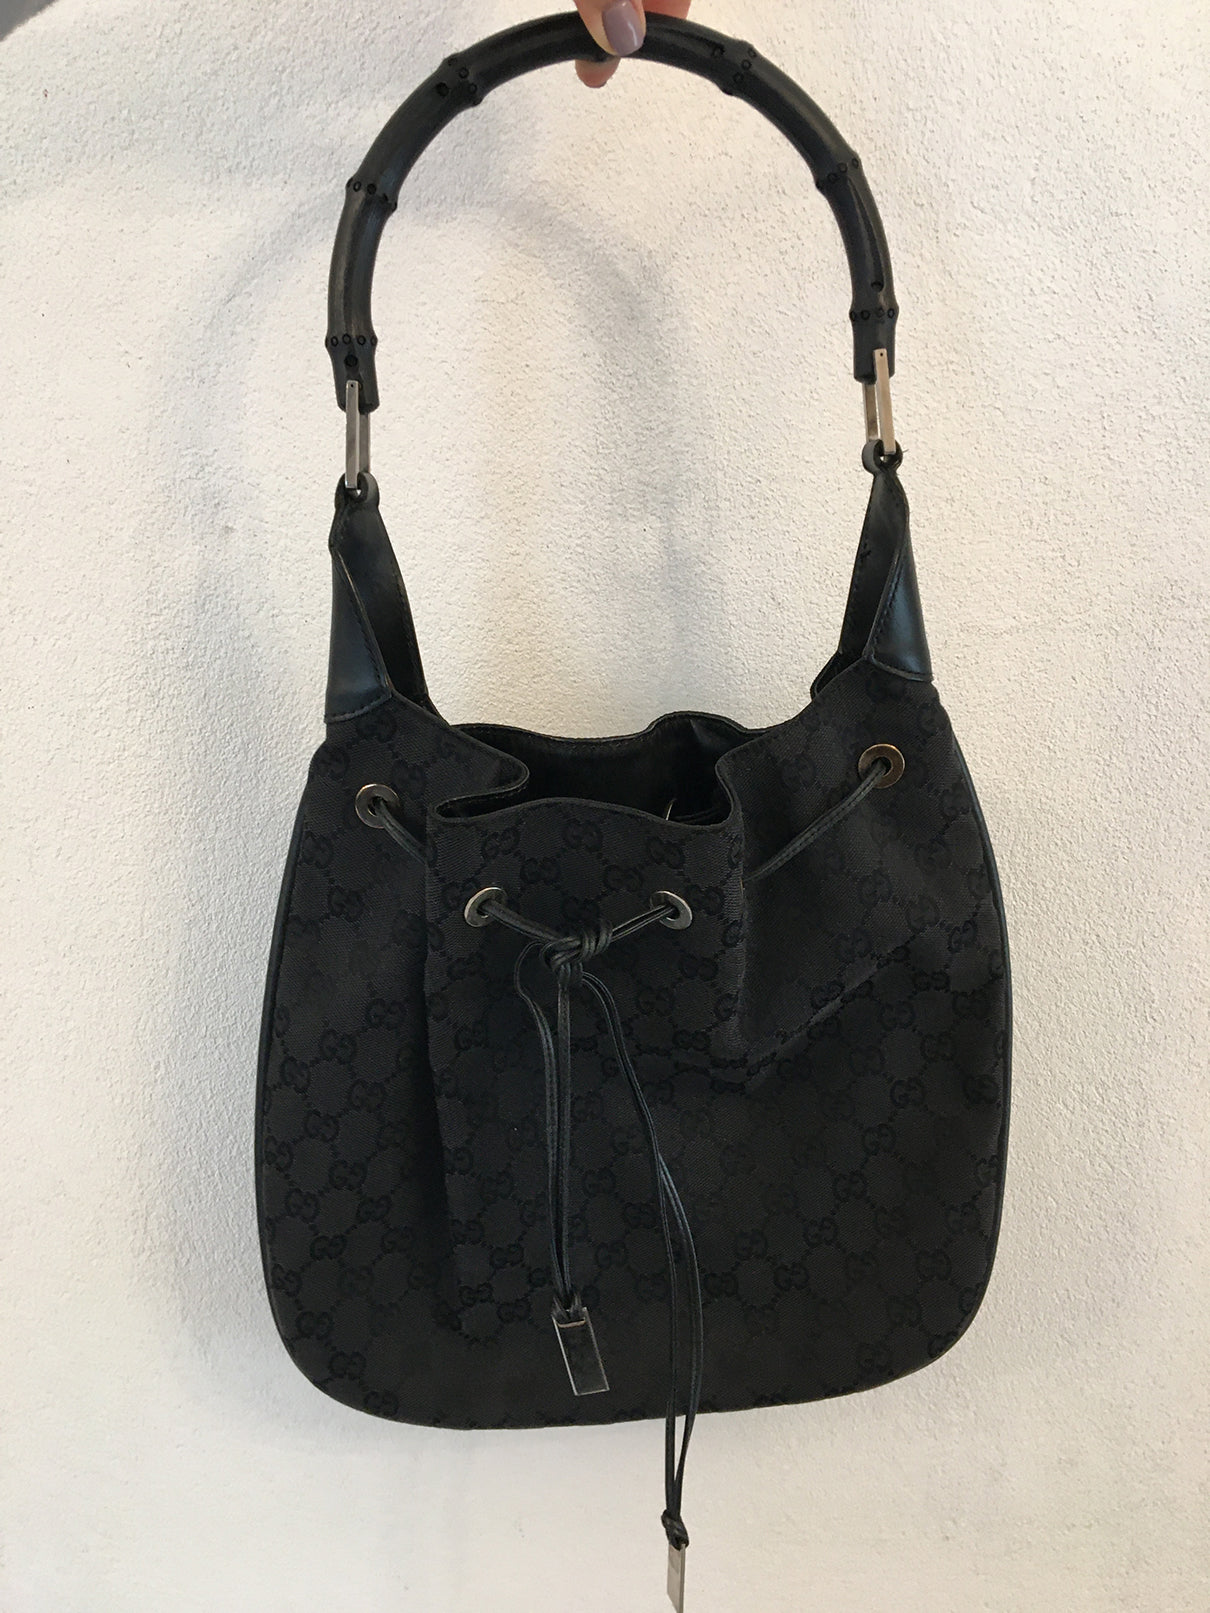 Gucci Black GG Fabric Bucket Bag with Bamboo Handle